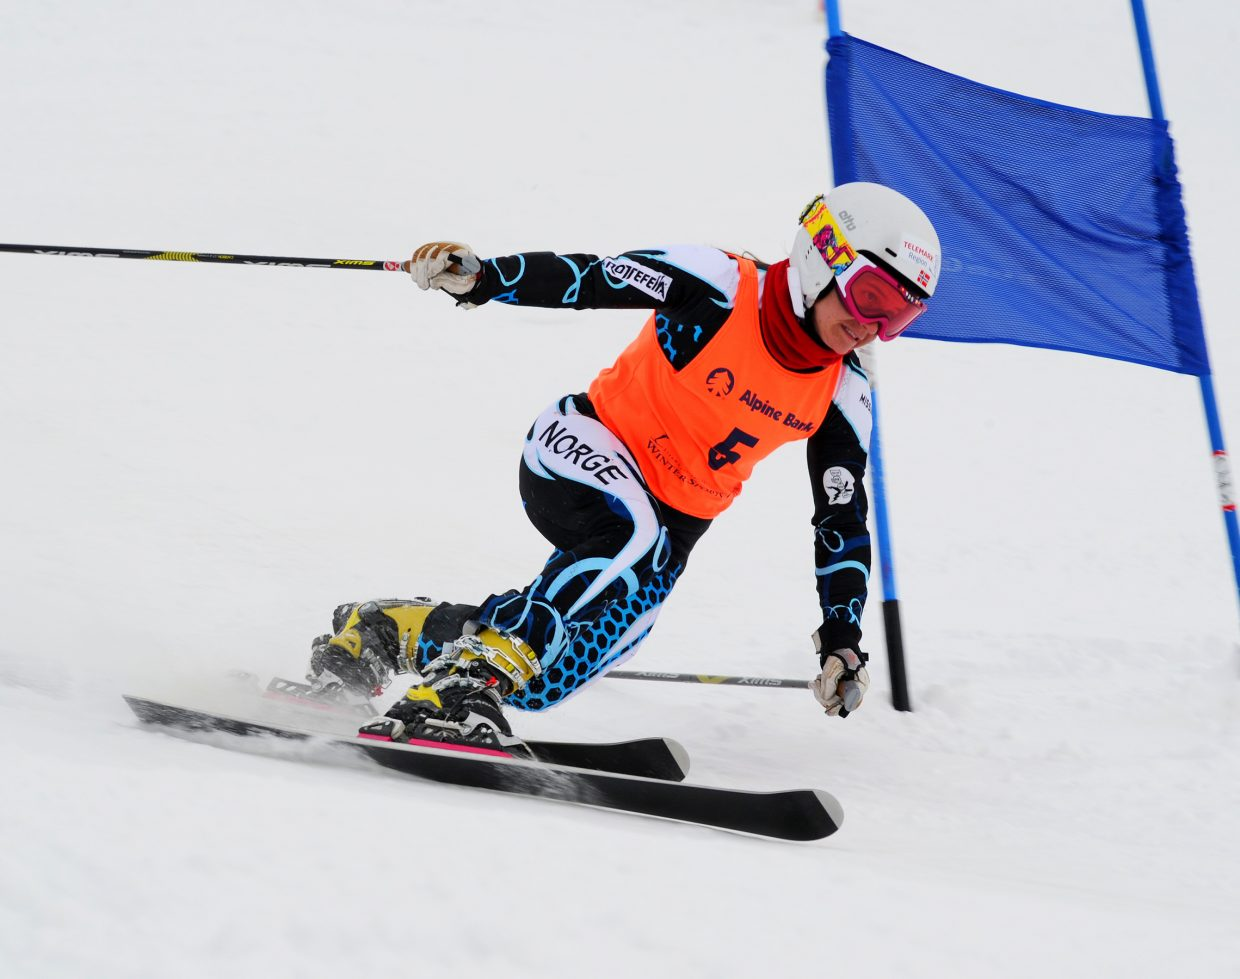 Anne Marit Enger, of Switzerland, skis down the race course Monday for the Telemark World Cup event at Steamboat Ski Area.